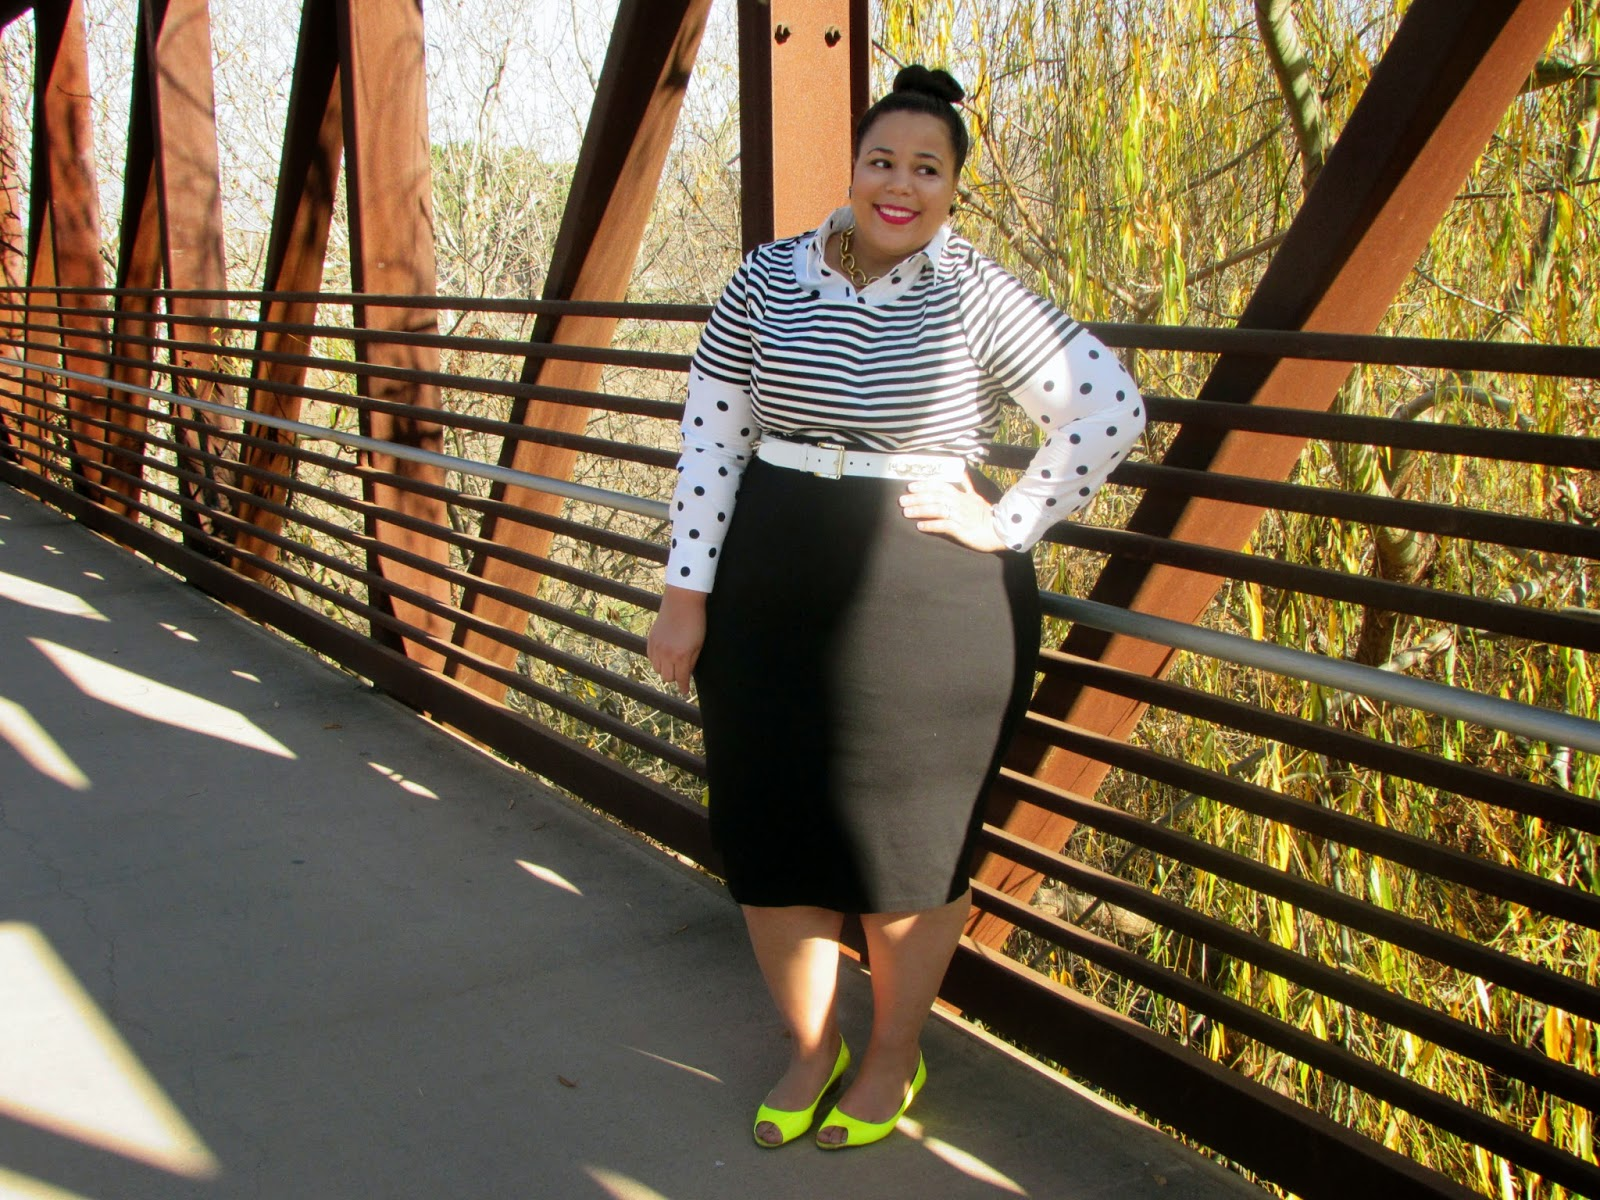 Polka dots, Stripes, Lane Bryant, Wet N Wild Mega Last, Plus size fashion